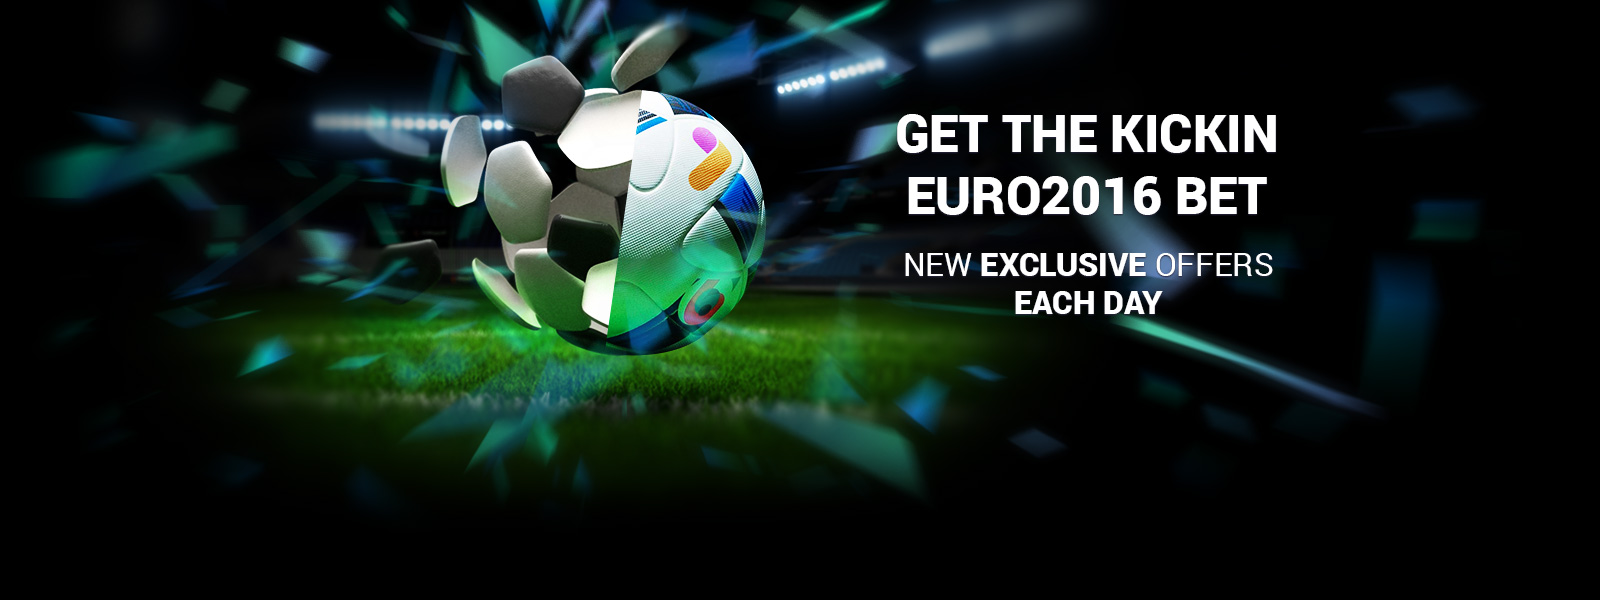 Get Kickin EURO 2016 Bets Each Day